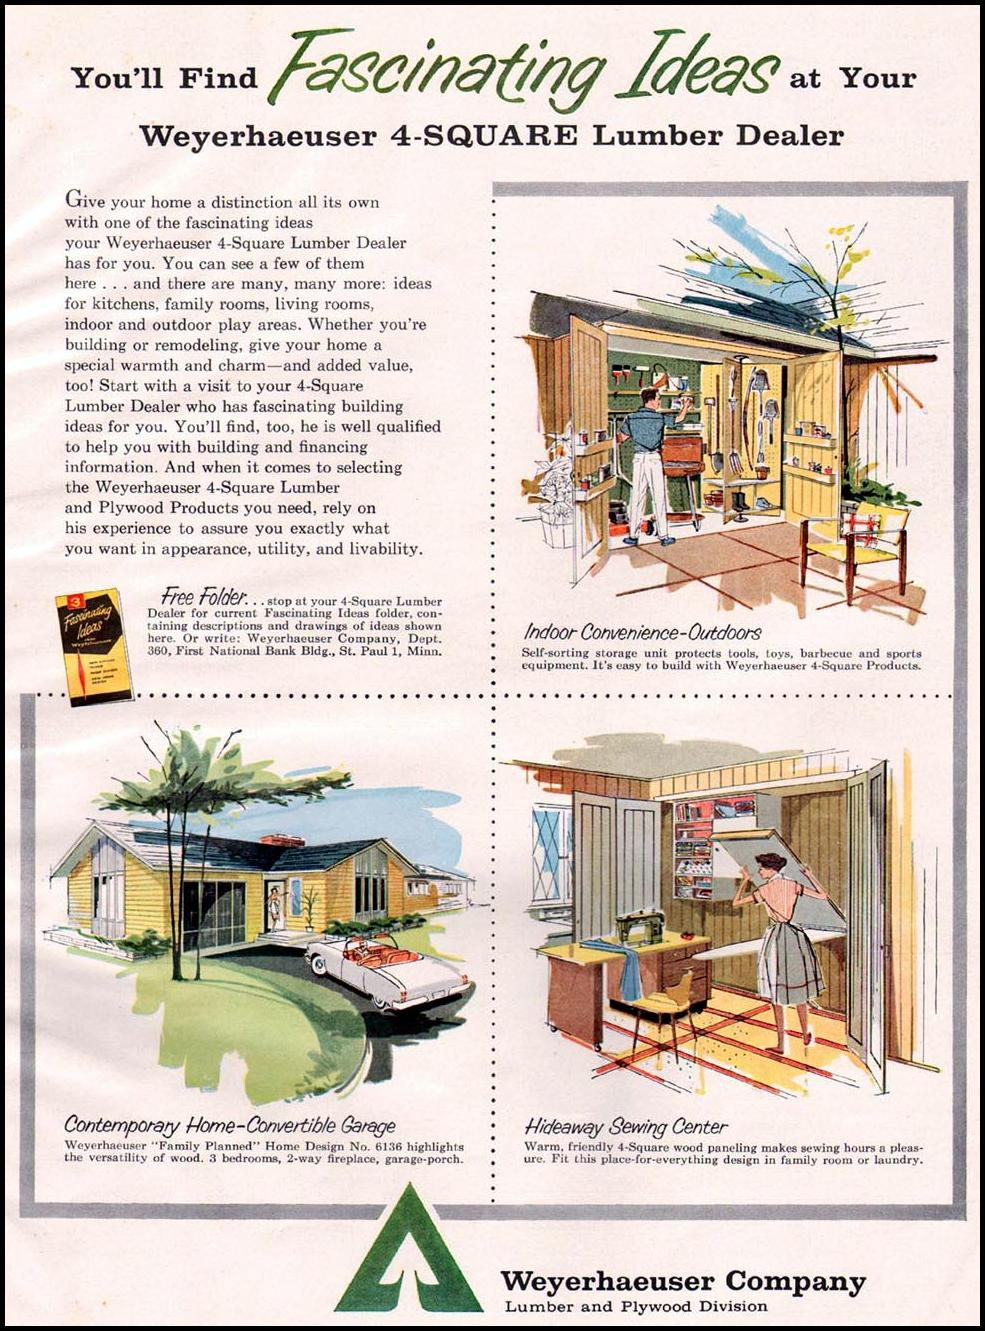 WEYERHAUSER LUMBER AND PLYWOOD PRODUCTS BETTER HOMES AND GARDENS 03/01/1960 p. 159